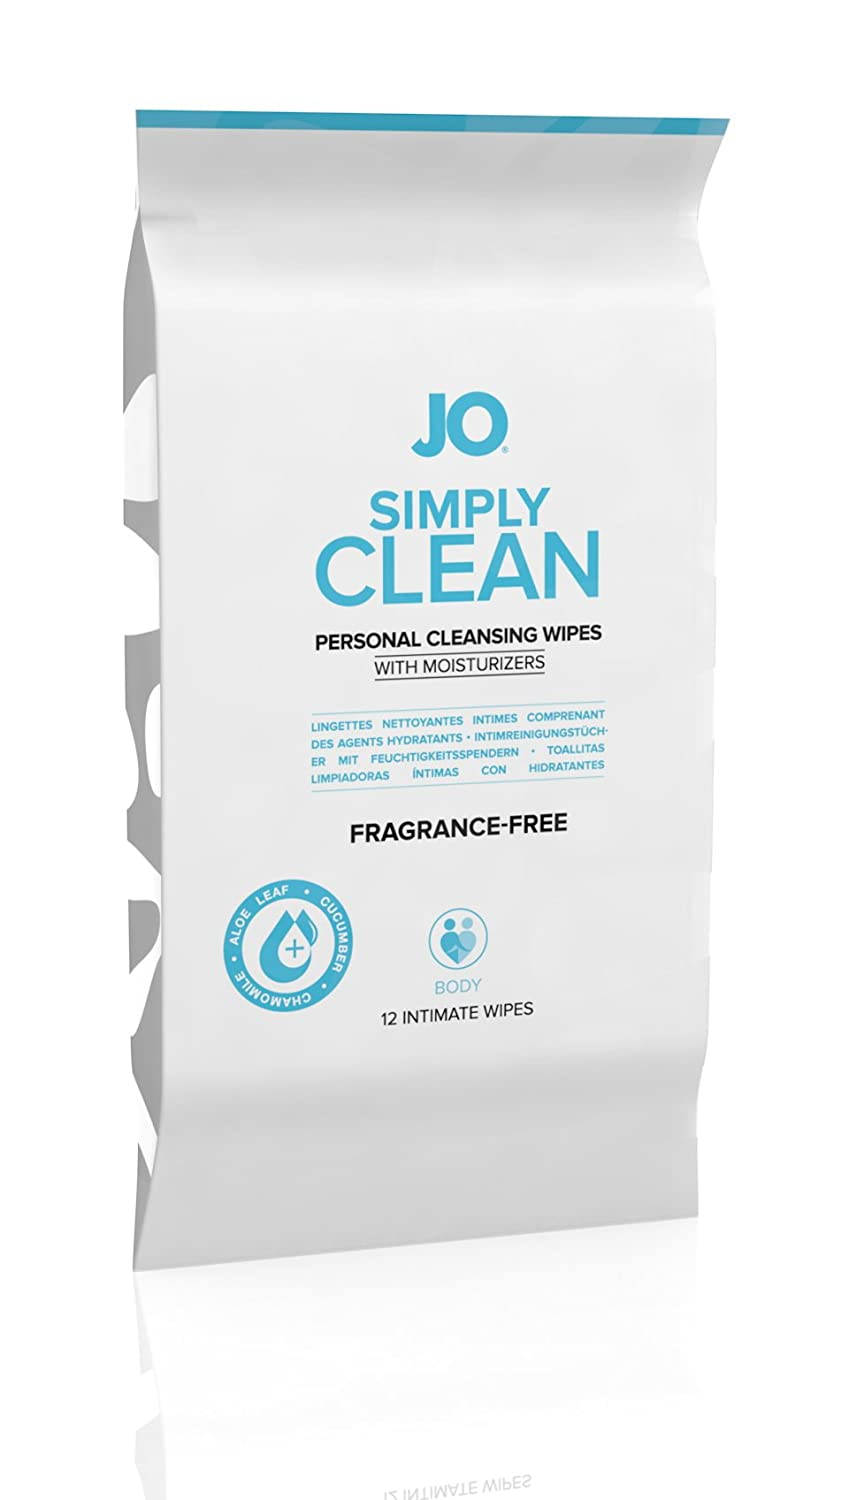 Amazon.com: System JO Personal Cleansing Wipes, Extra Clean, 12 Count: Health & Personal Care